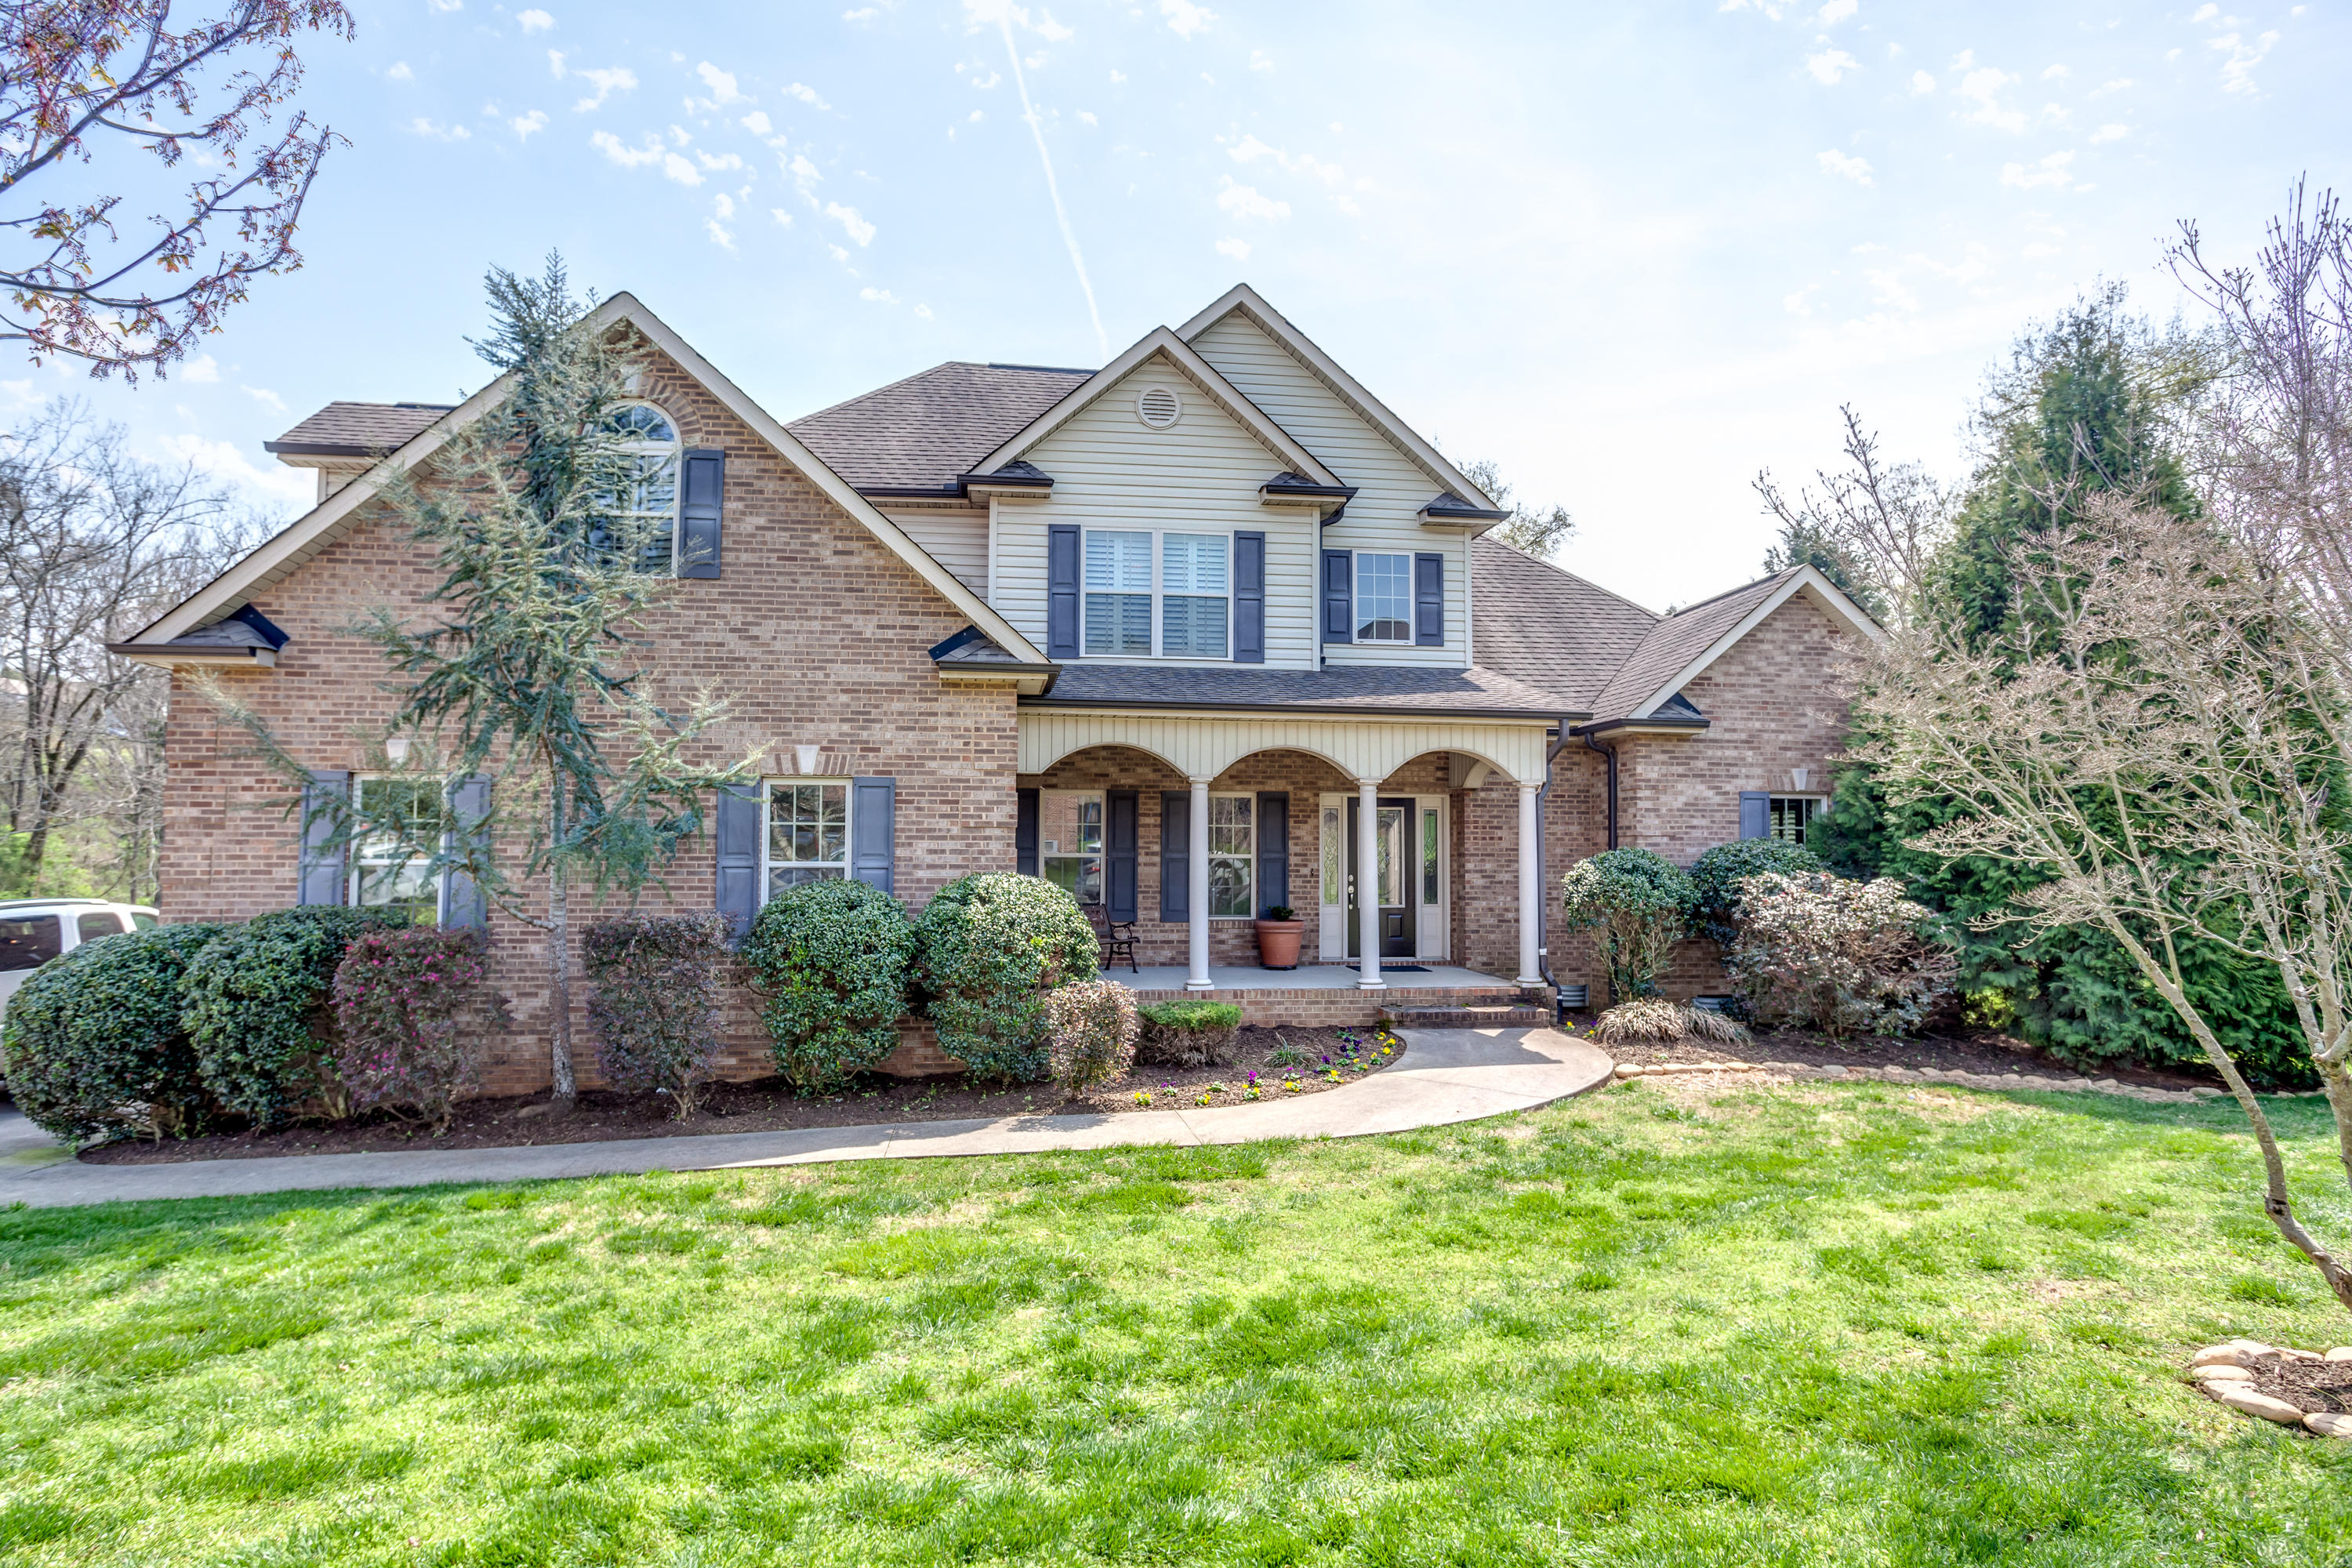 3424 Hubbs Crossing, Knoxville, Tennessee, United States 37938, 4 Bedrooms Bedrooms, ,3 BathroomsBathrooms,Single Family,For Sale,Hubbs Crossing,1112499